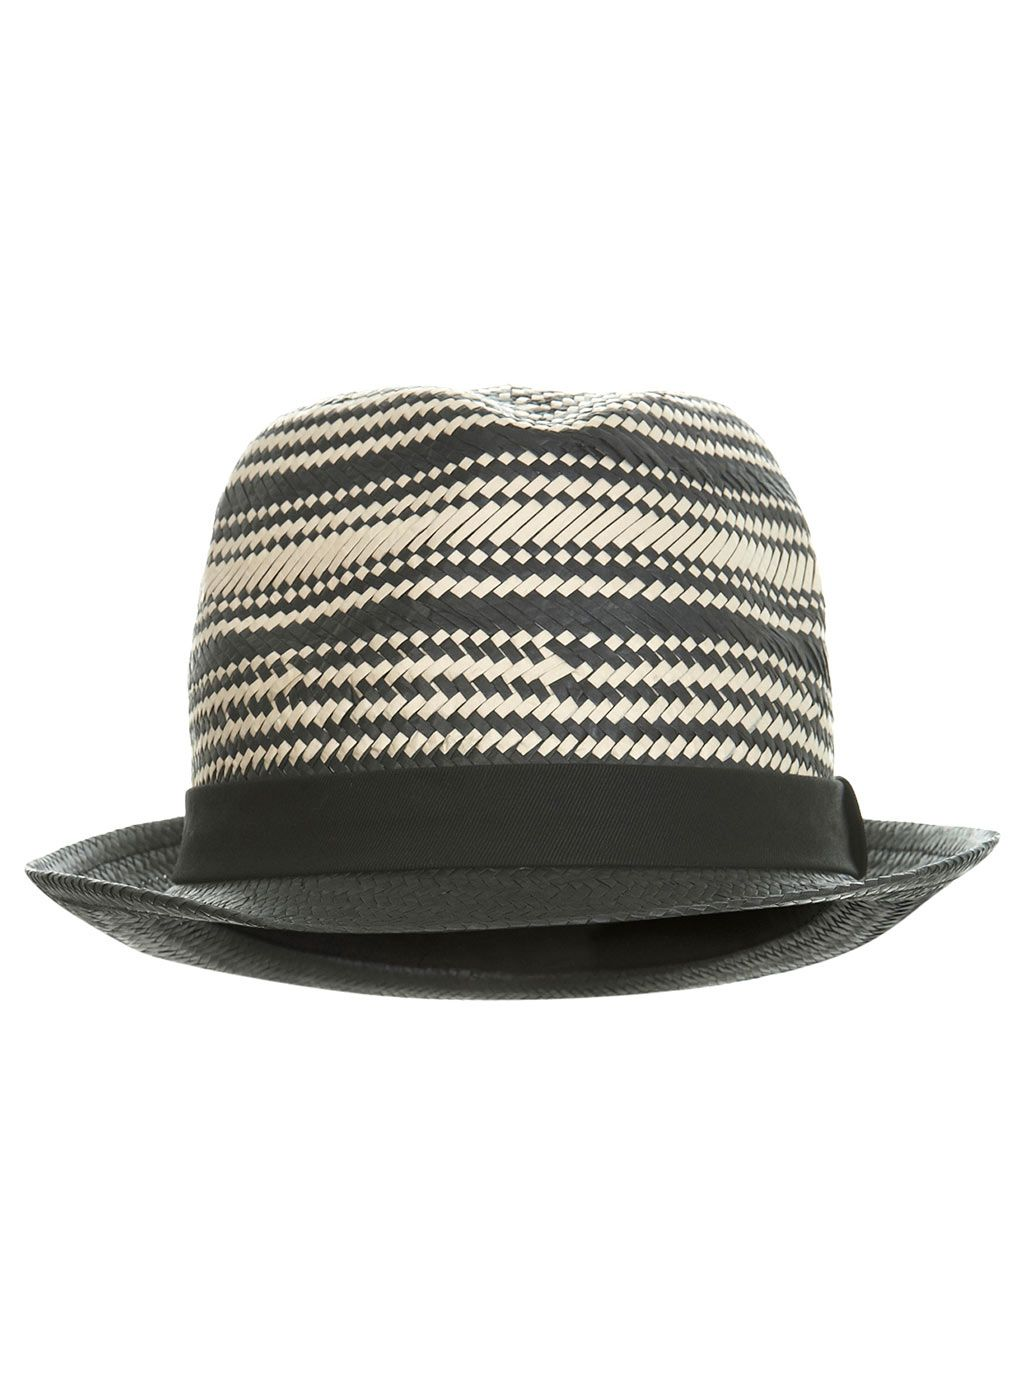 Black trilby hat - perfect for those mornings when it's a struggle making your way to get breakfast and you feel like hiding!